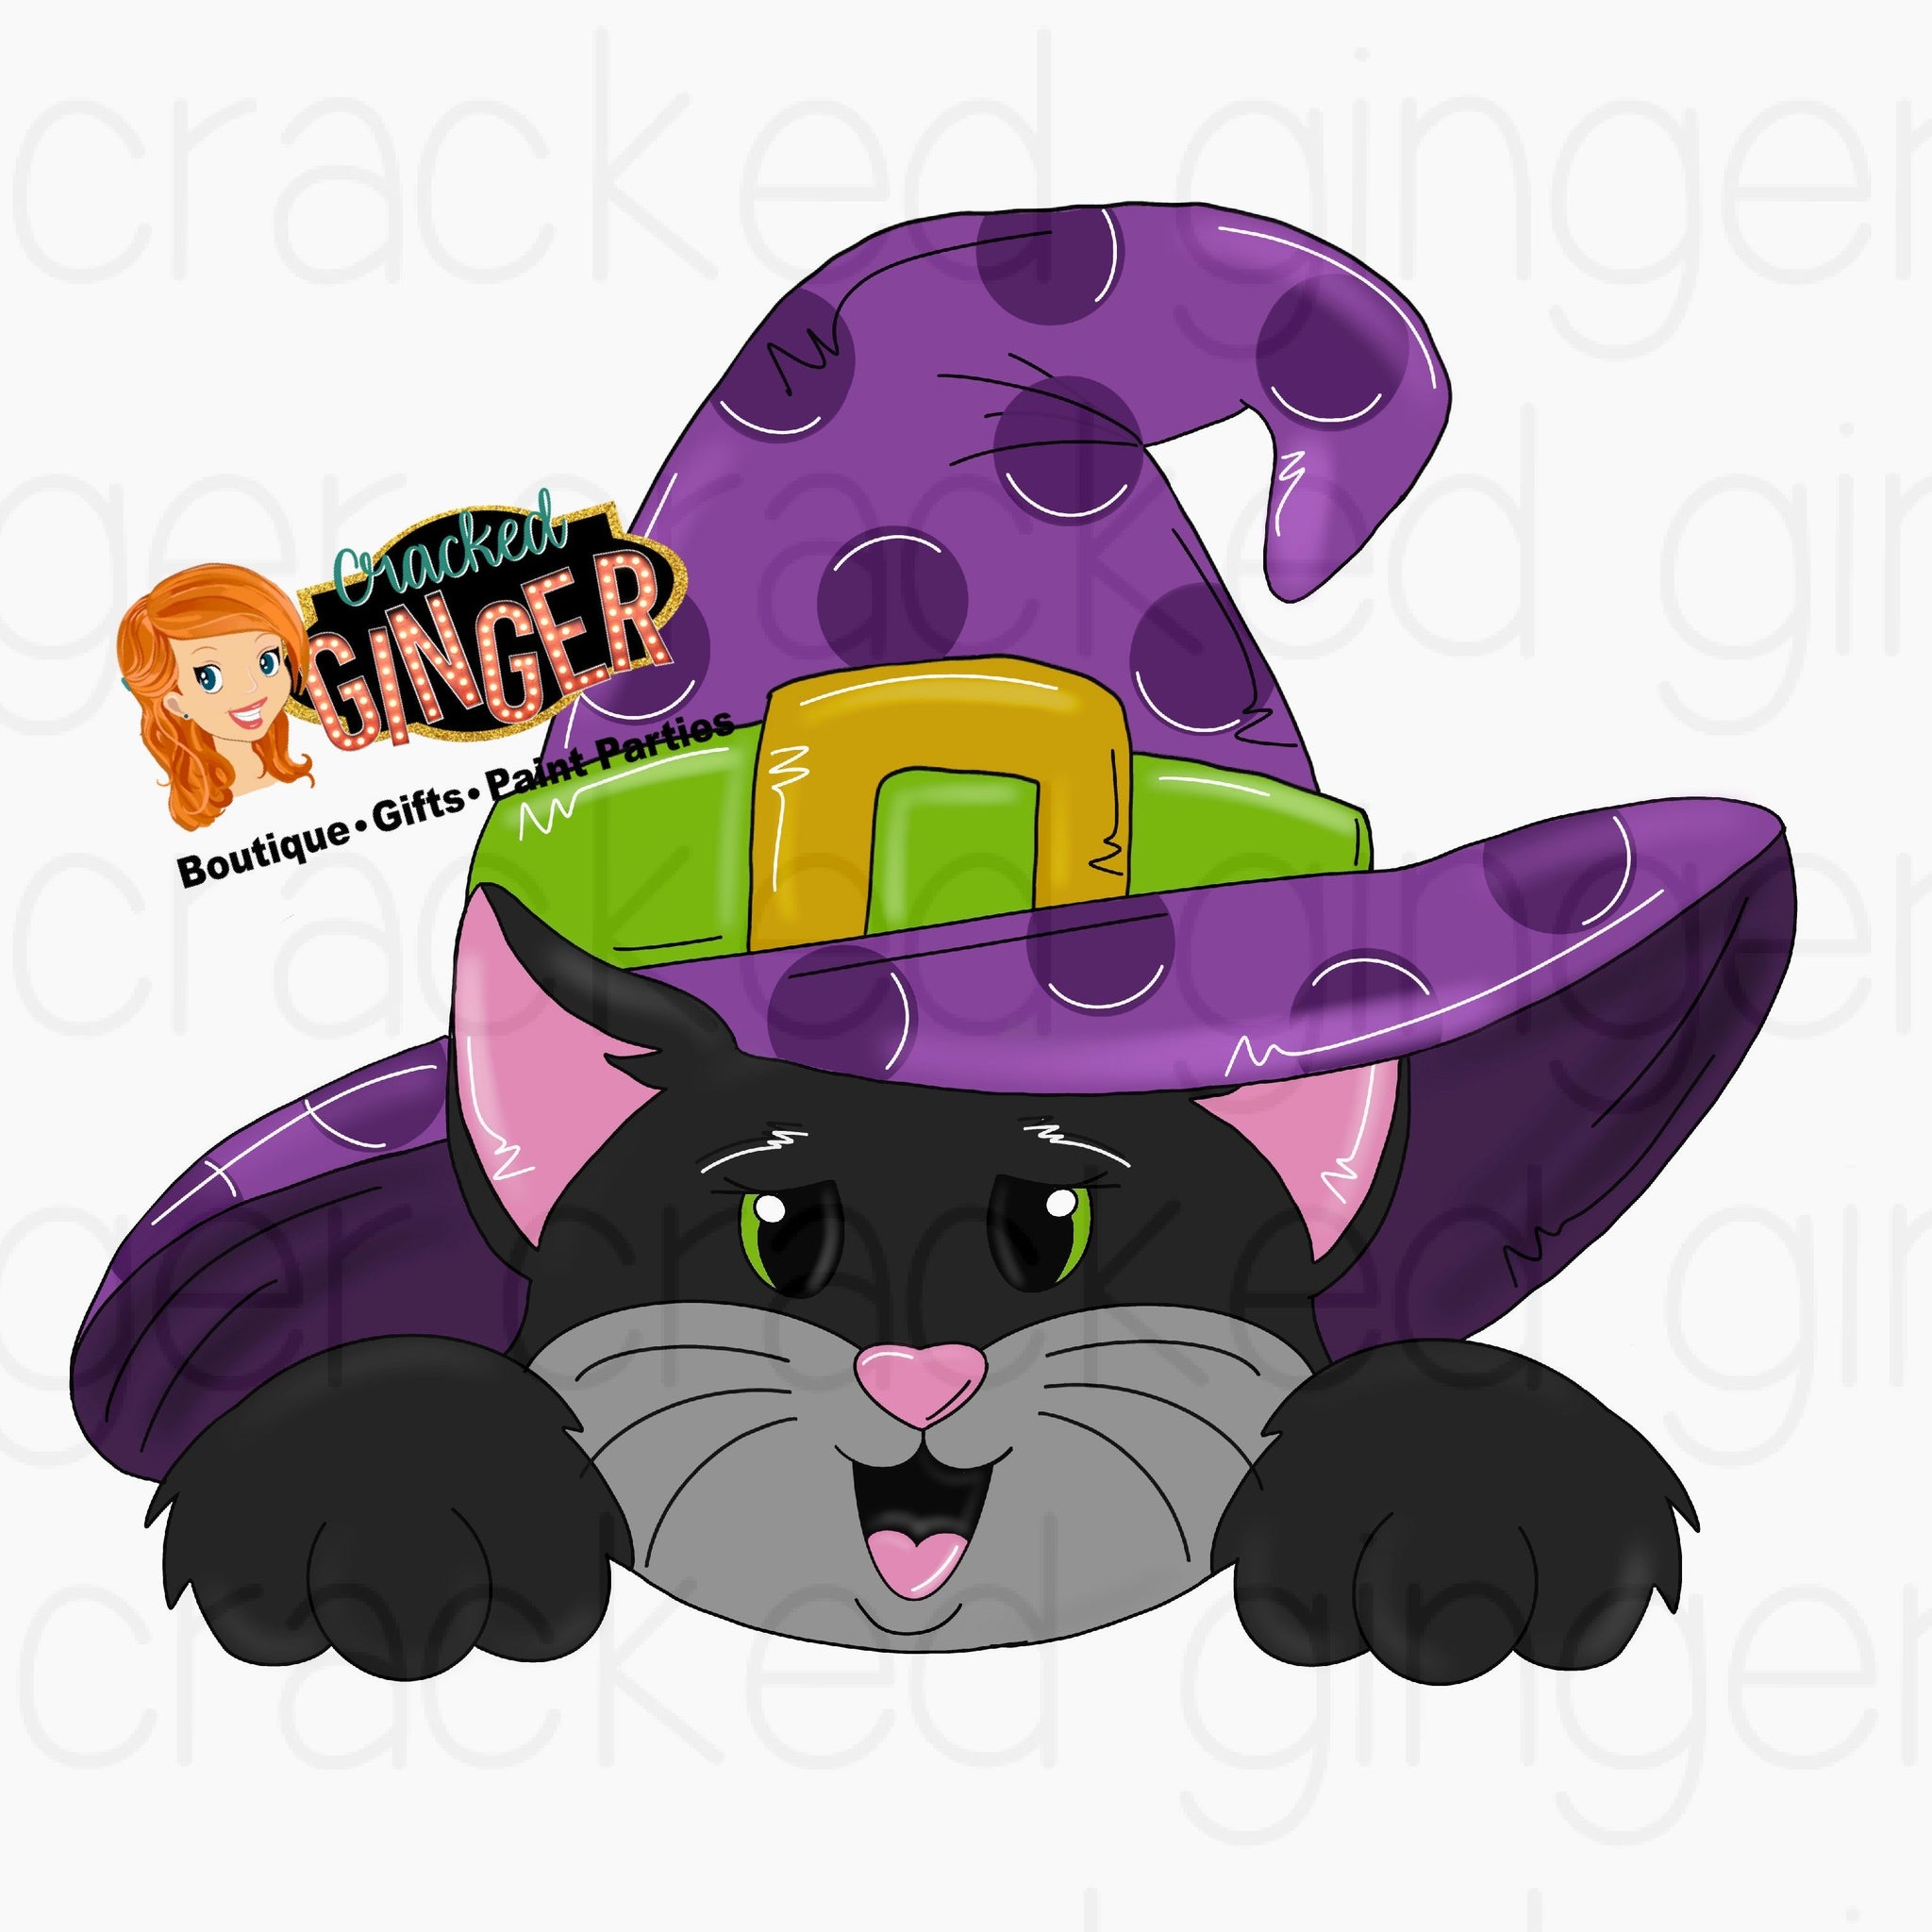 Cat in Witch hat